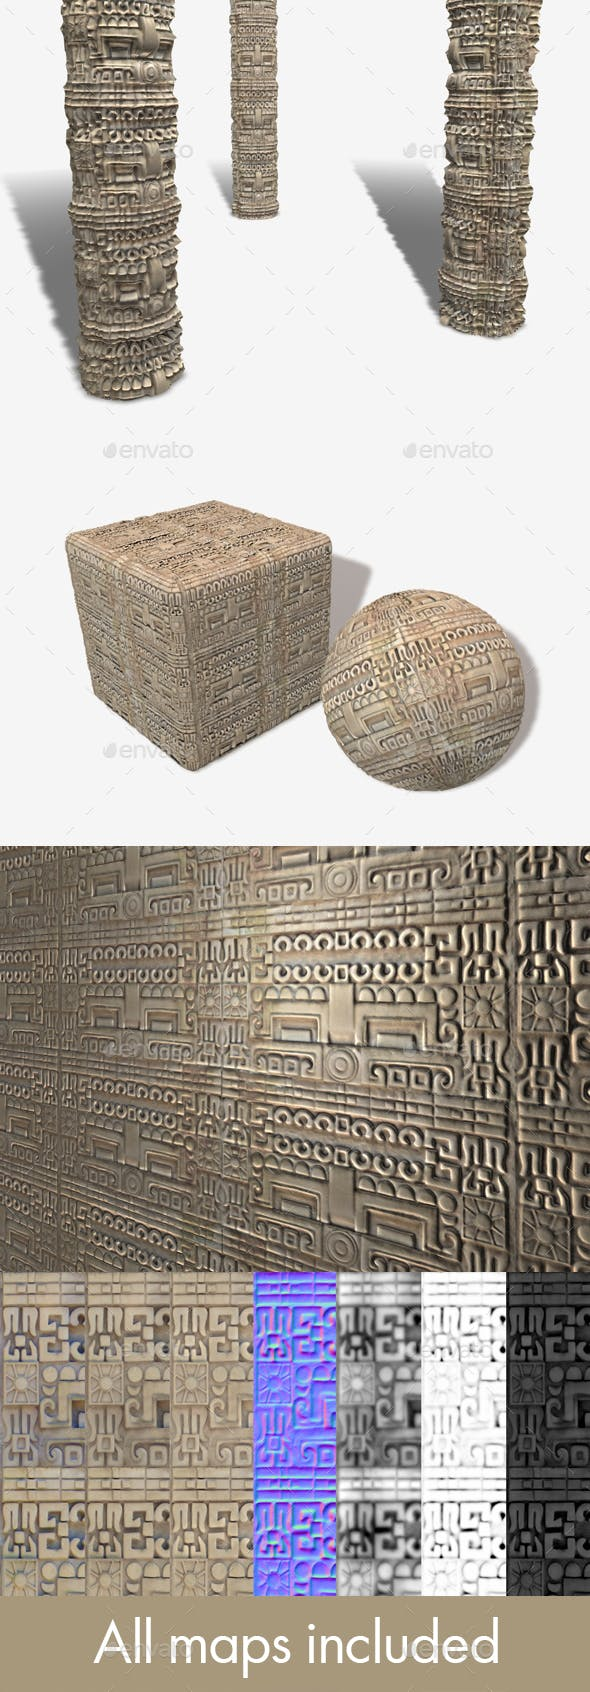 Mexican Stone Carving Seamless Texture - 3DOcean Item for Sale